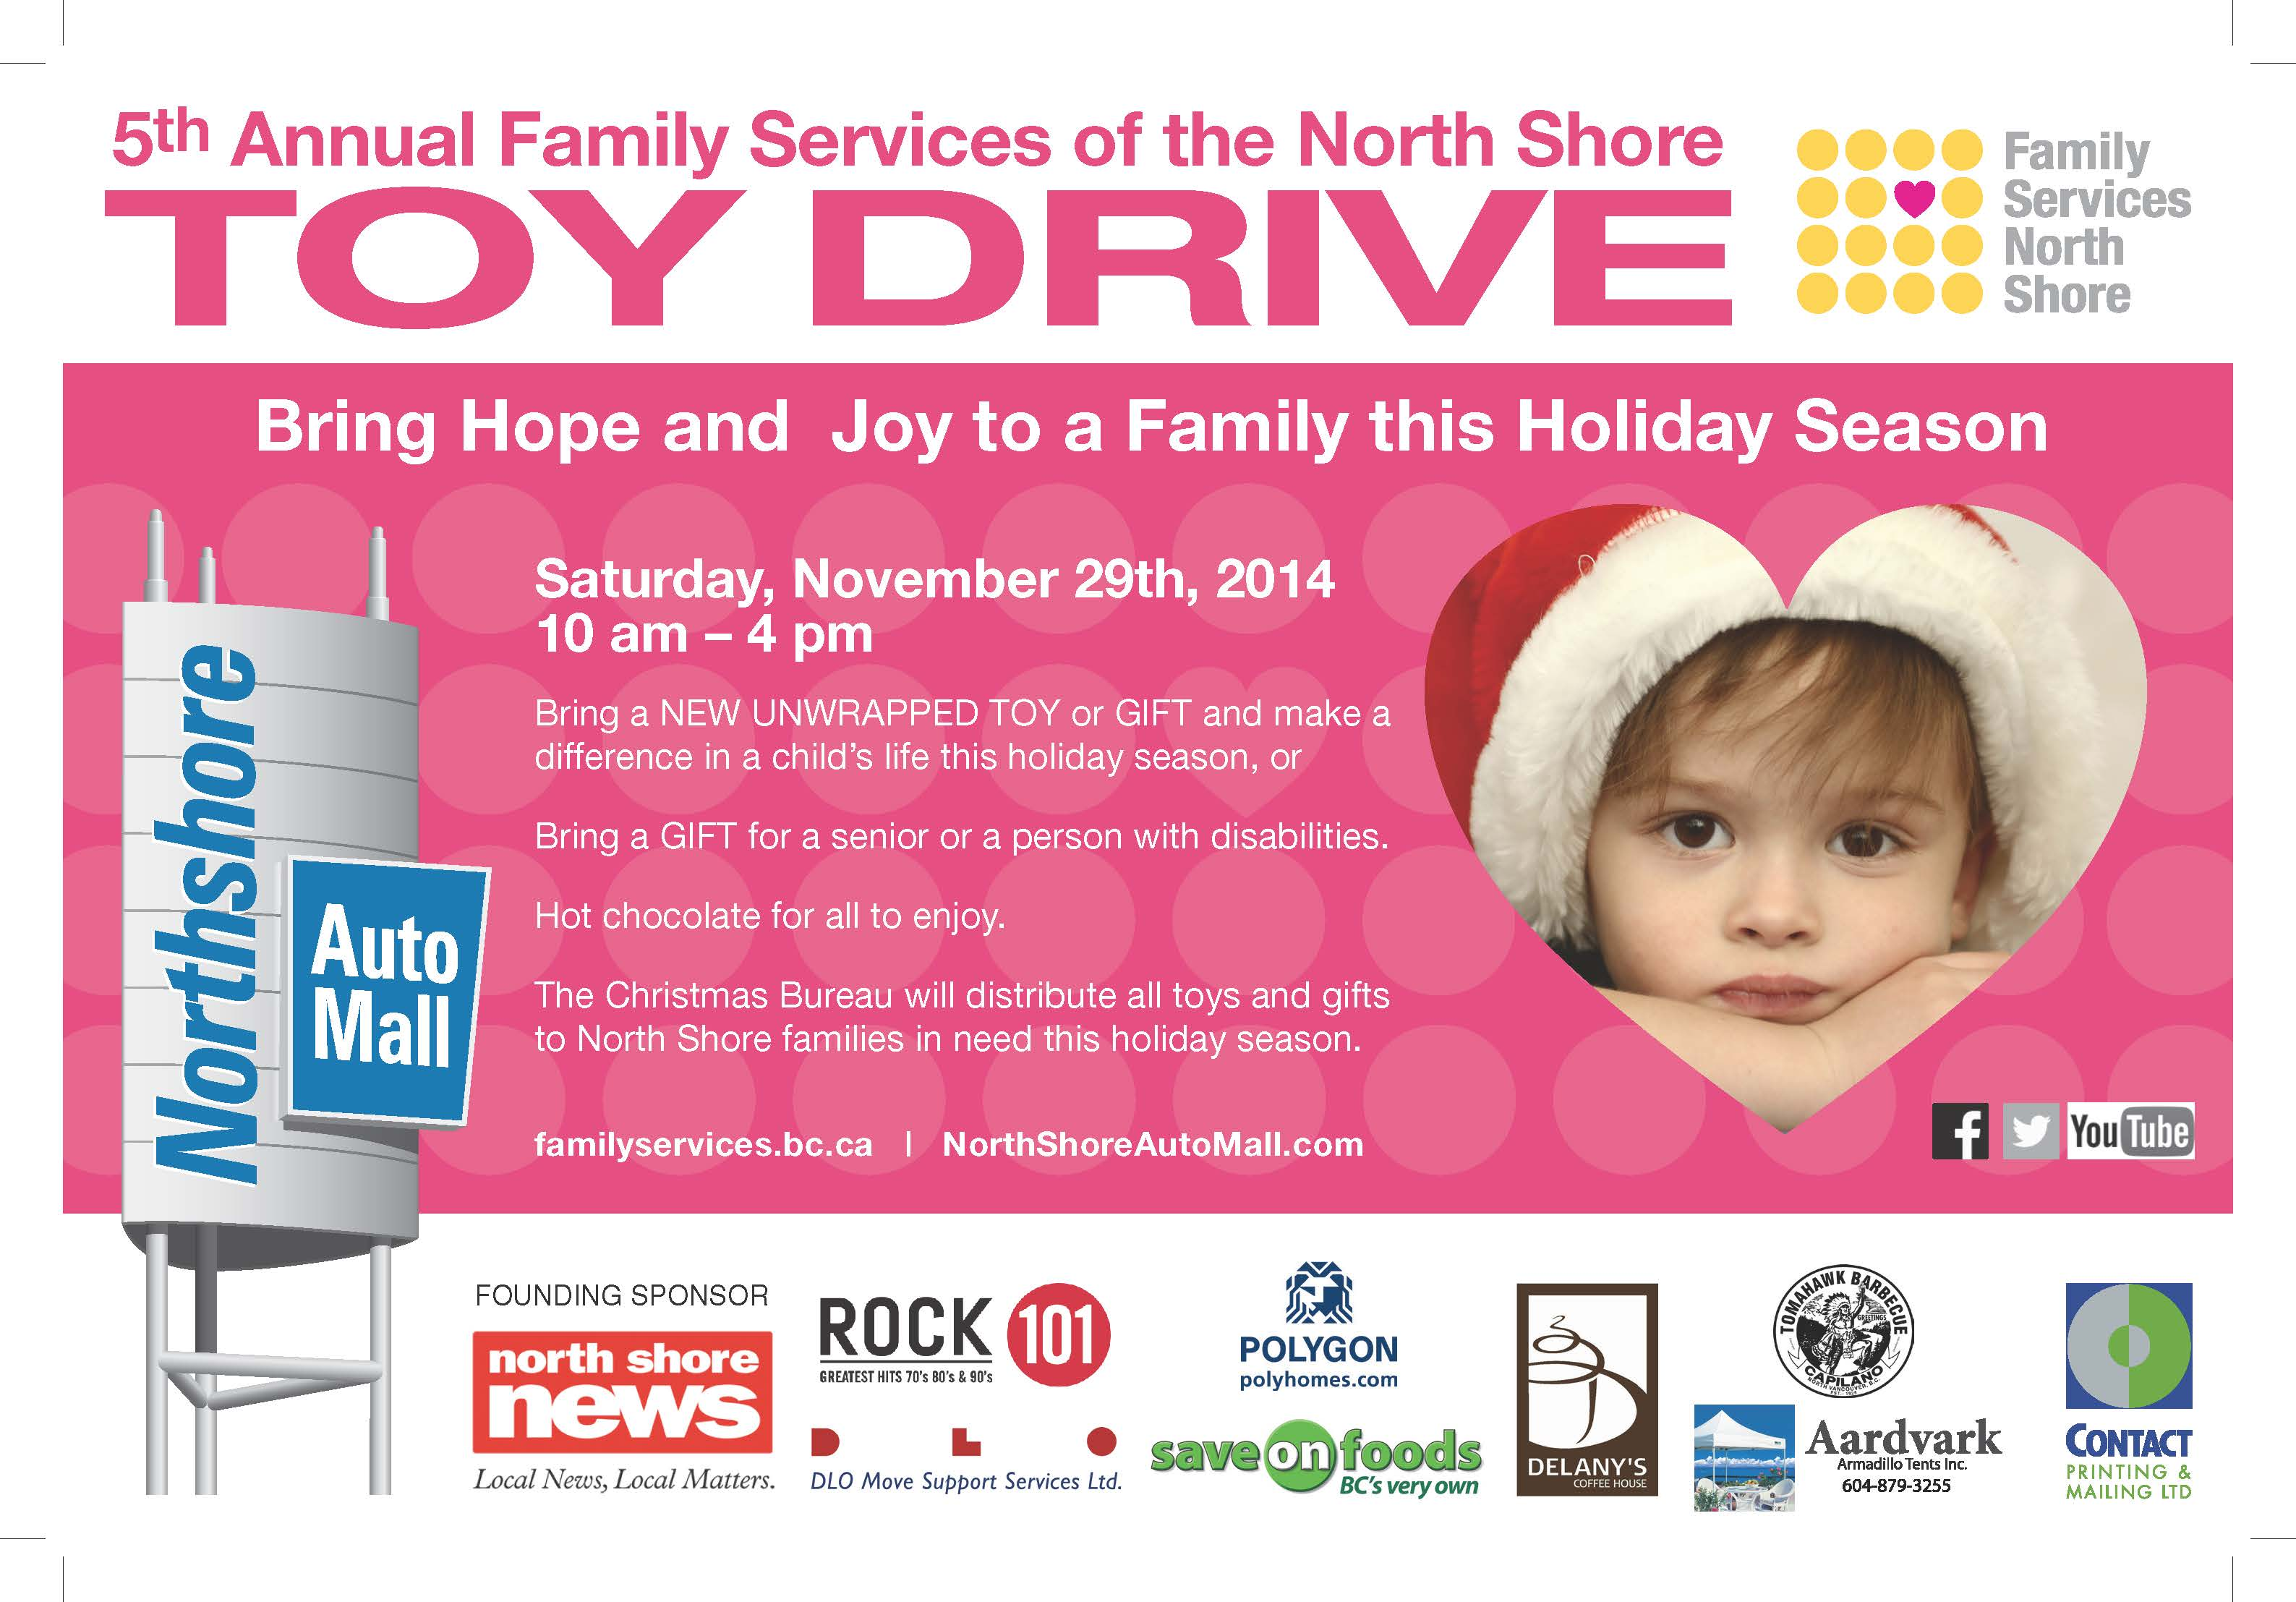 Family Services of the North Shore TOY DRIVE